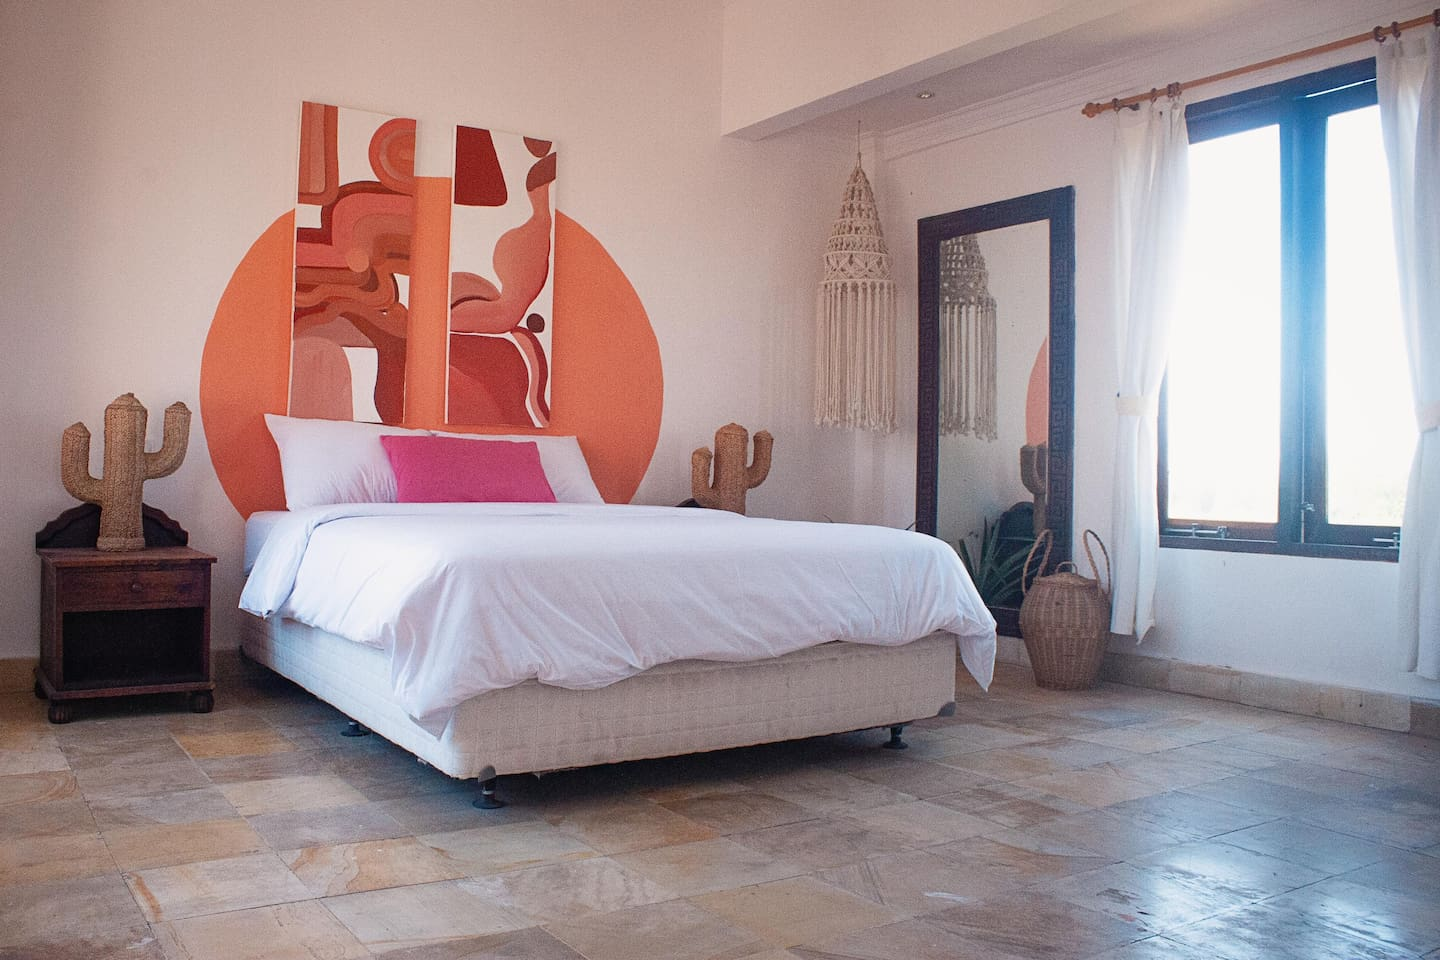 Your private room with queen size bed and rice fields view